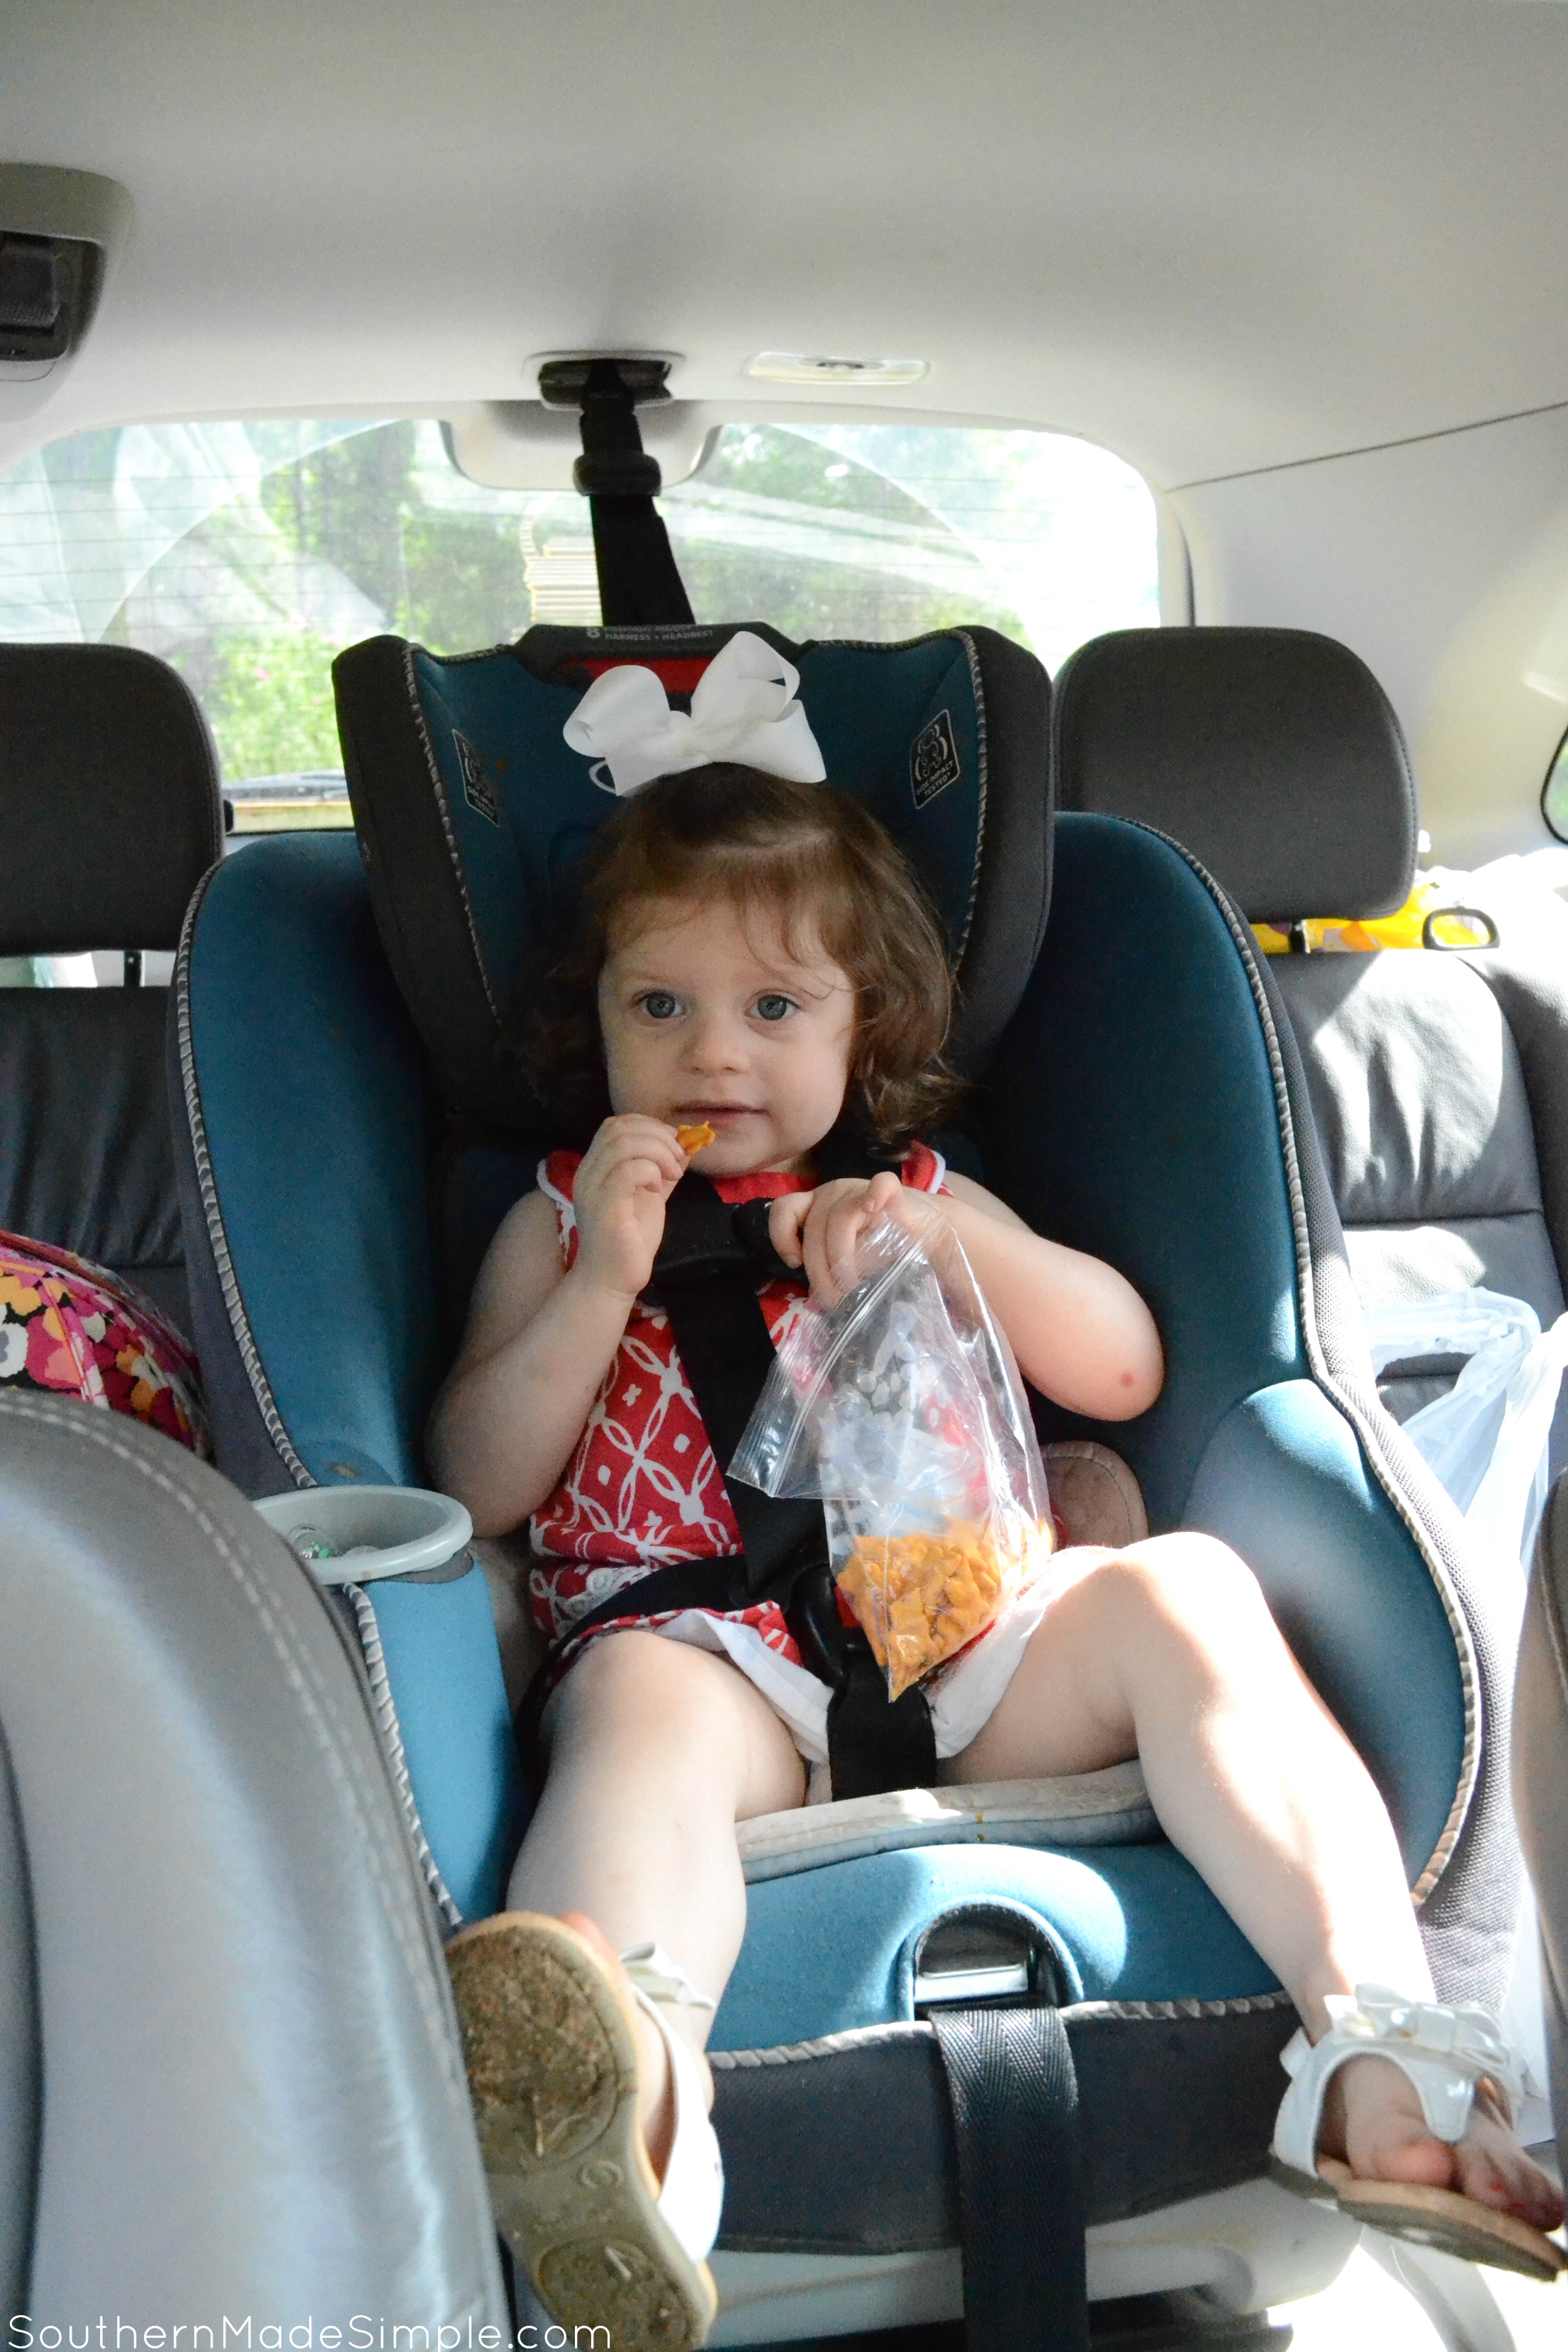 Protecting our children is a top priority of parents, and knowing and understanding the dangers of leaving a car unattended in a hot vehicle is extremely important. Have a plan in place to check for children in the back seat! #CheckForBaby #IC #ad